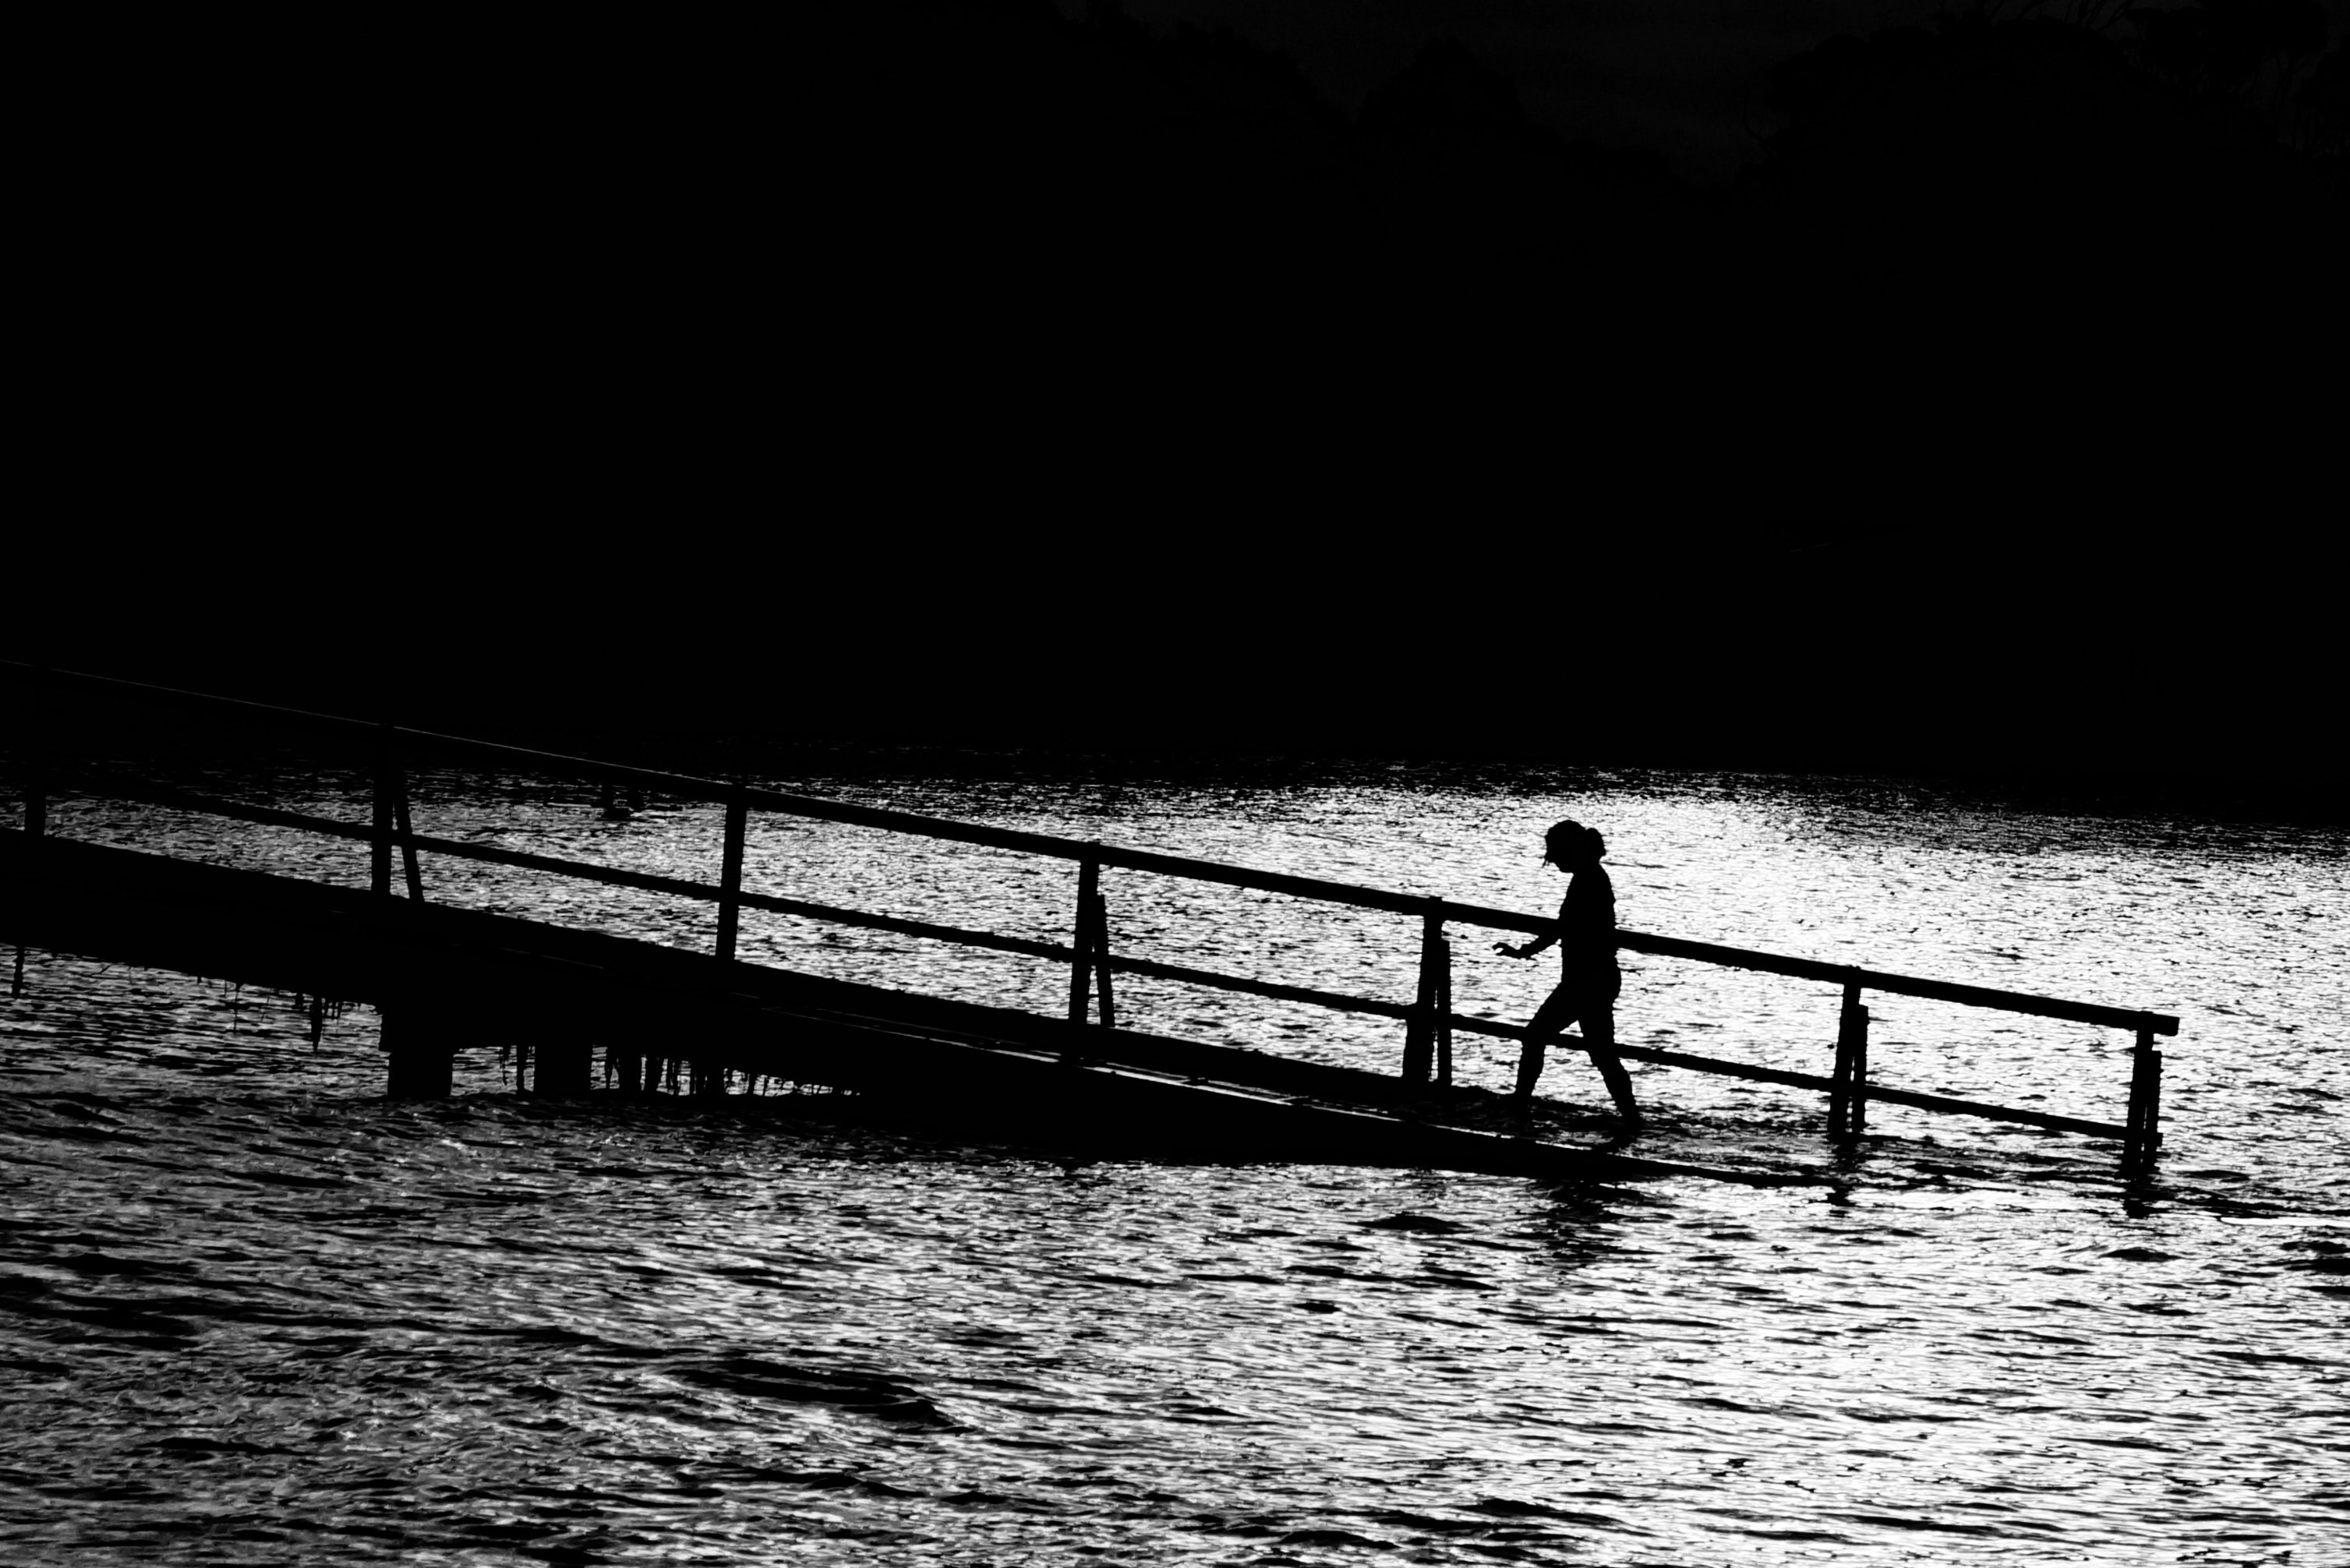 person walks on brown pier over body of water